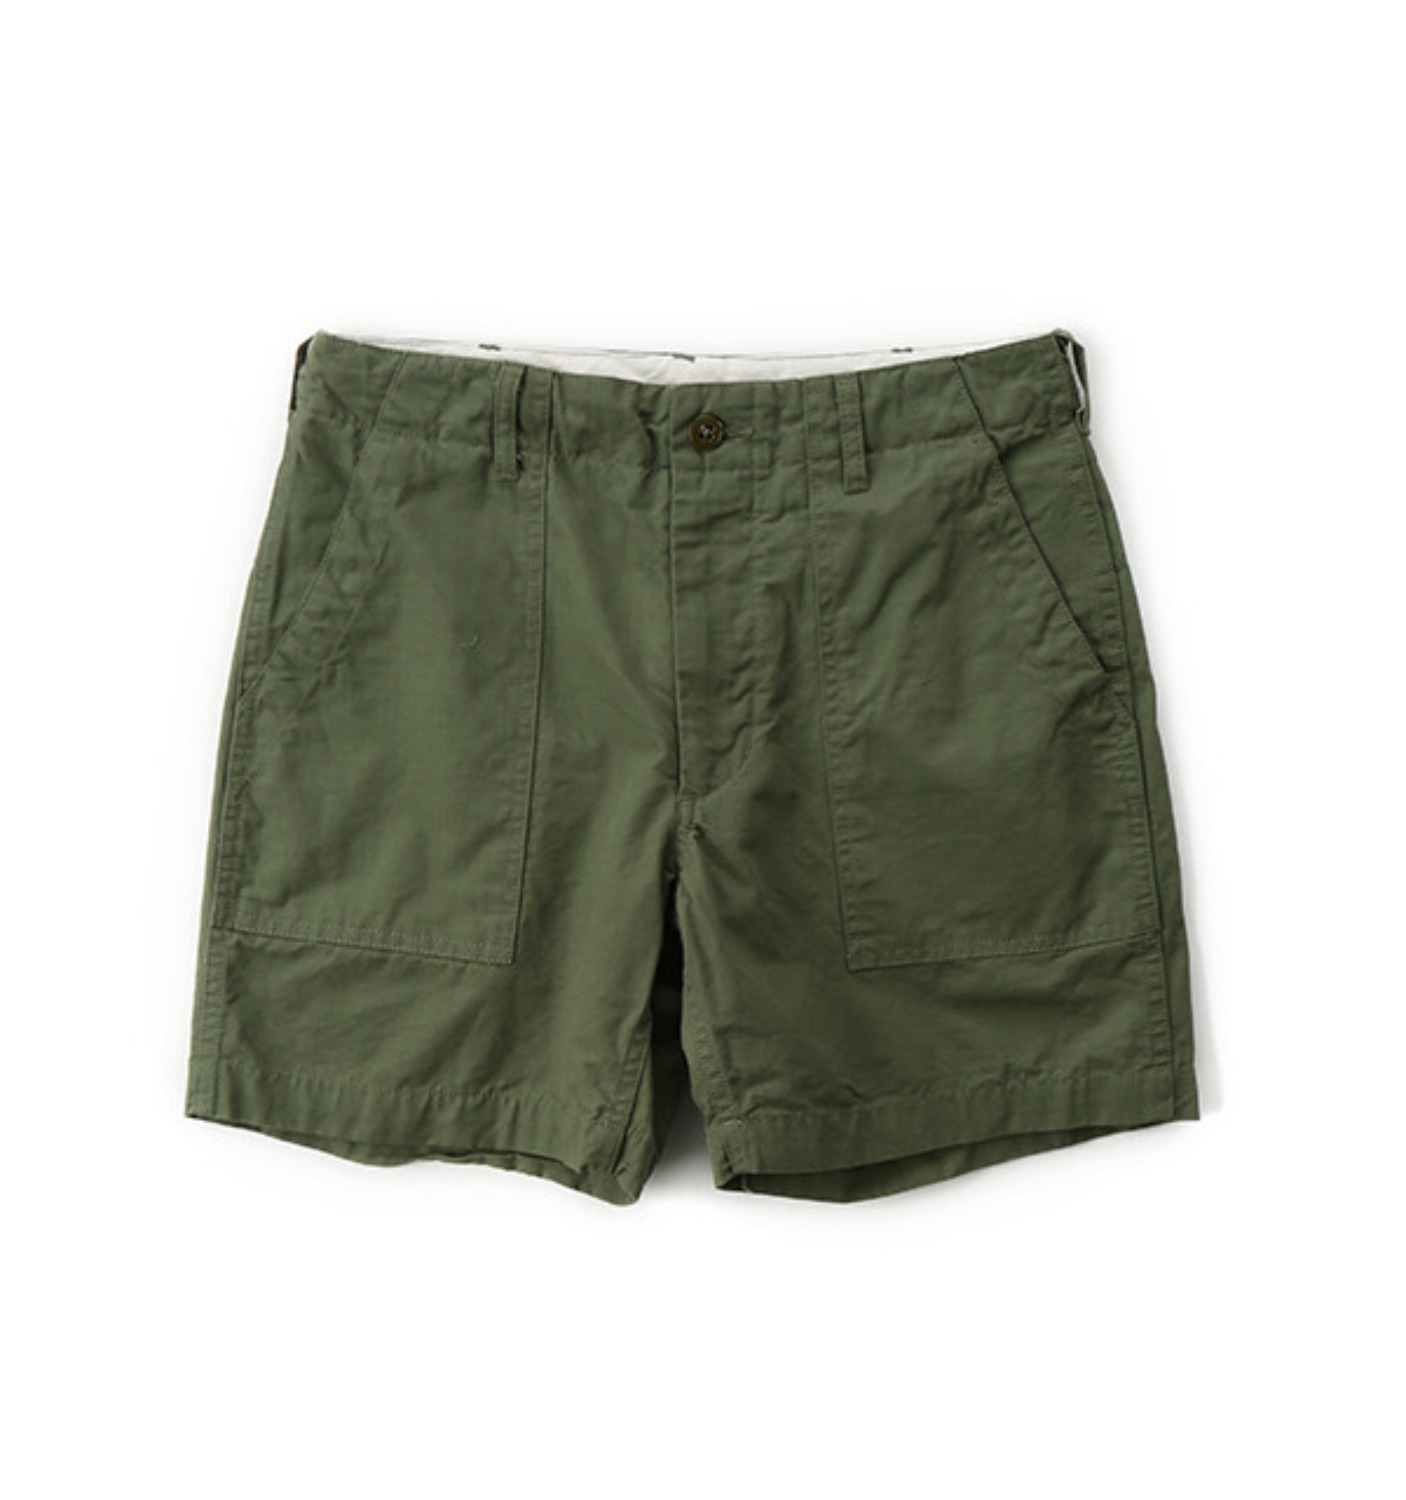 FWK FATIGUE SHORT OLIVE COTTON RIPSTOP